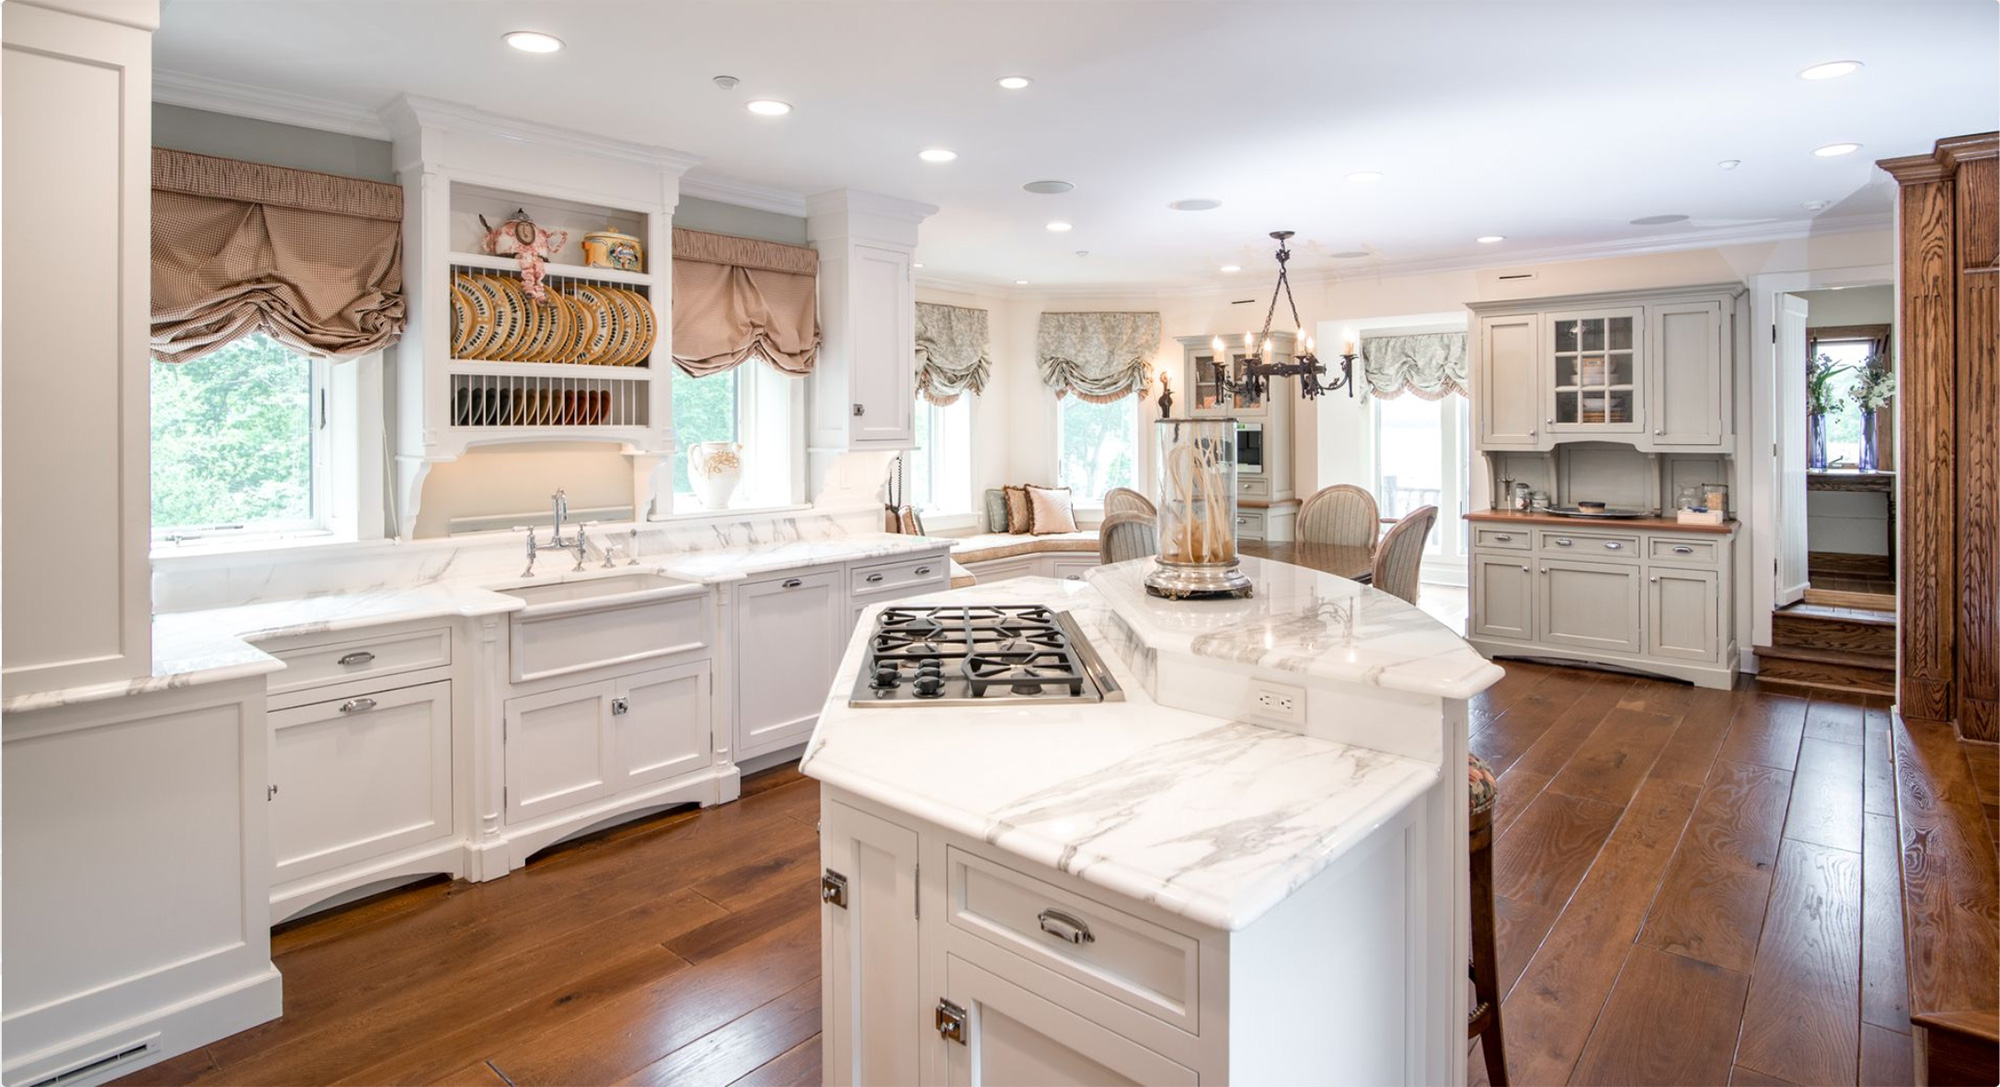 derek-jeter-house-kitchen